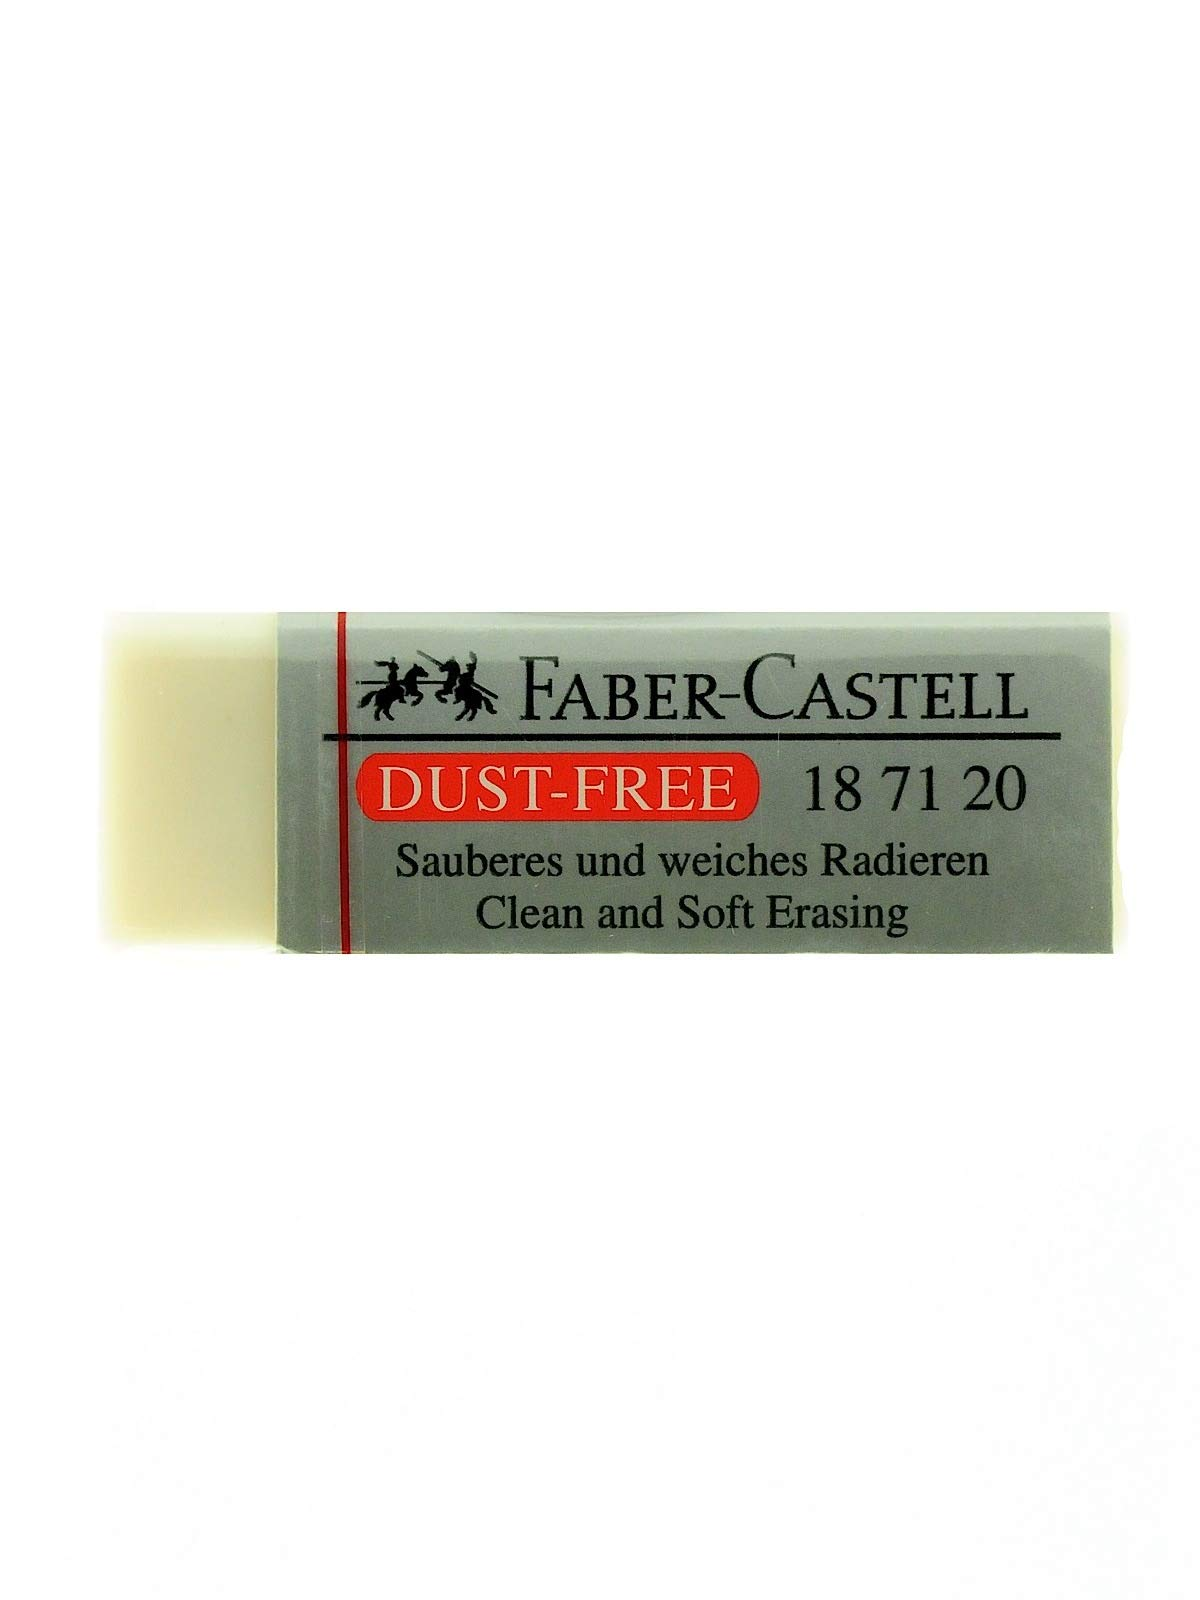 Faber-Castell Dust-Free Erasers 7 pcs sku# 1848172MA by Faber-Castell (Image #1)